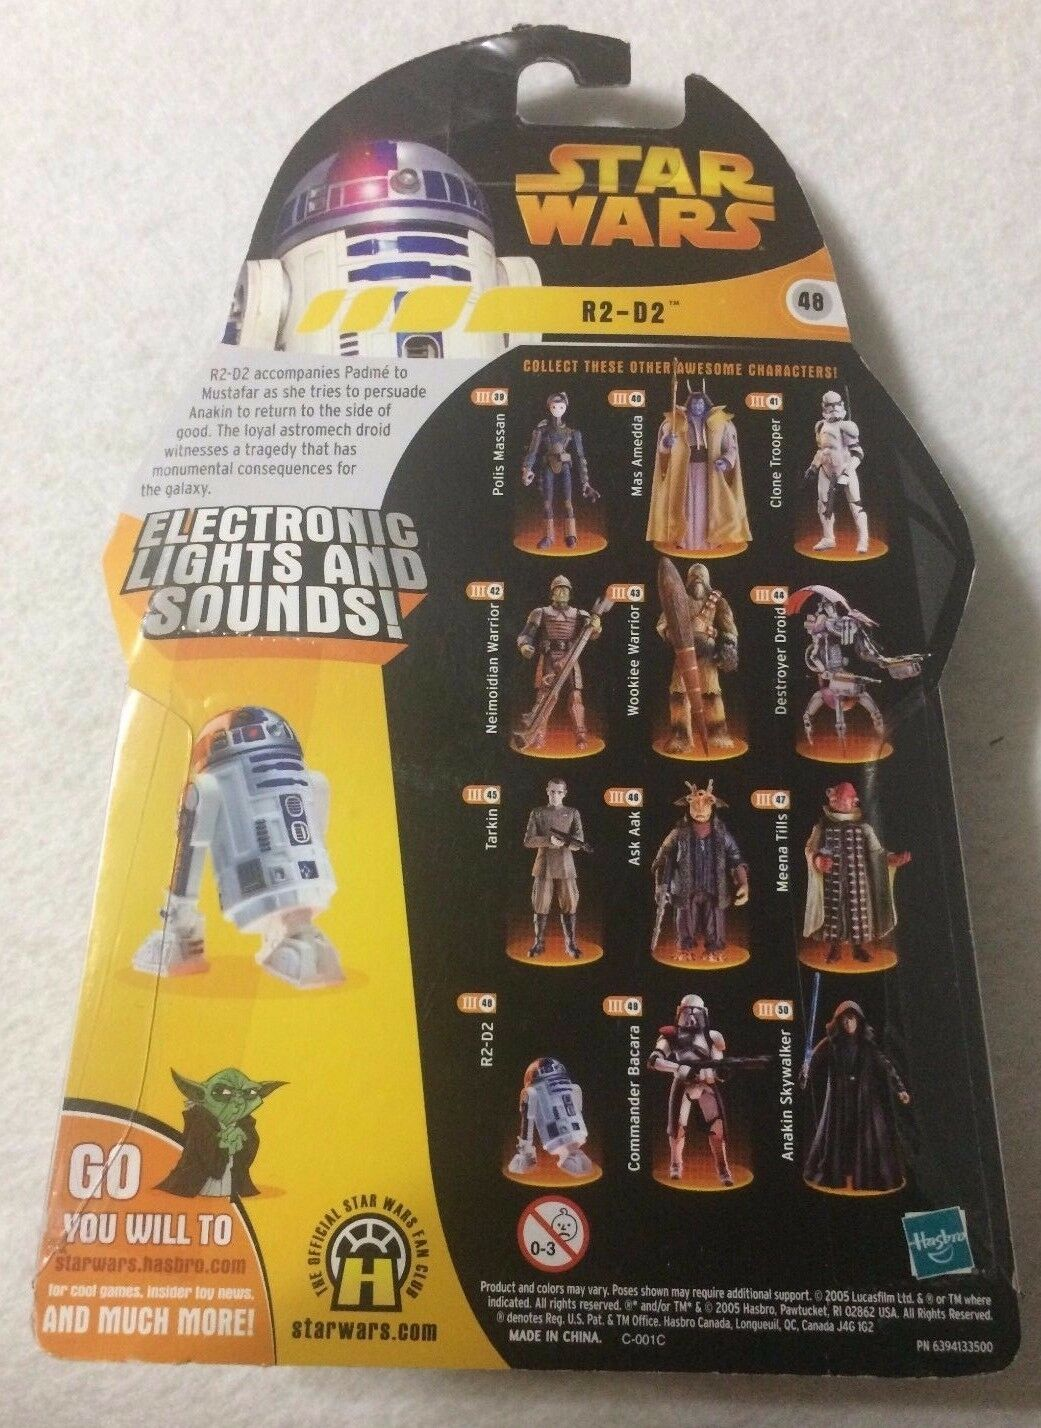 LOT OF 5 STAR WARS FIGURE Die Cast ++ R2-D2 #48 YODA #26 Darth Vader #11 NIB